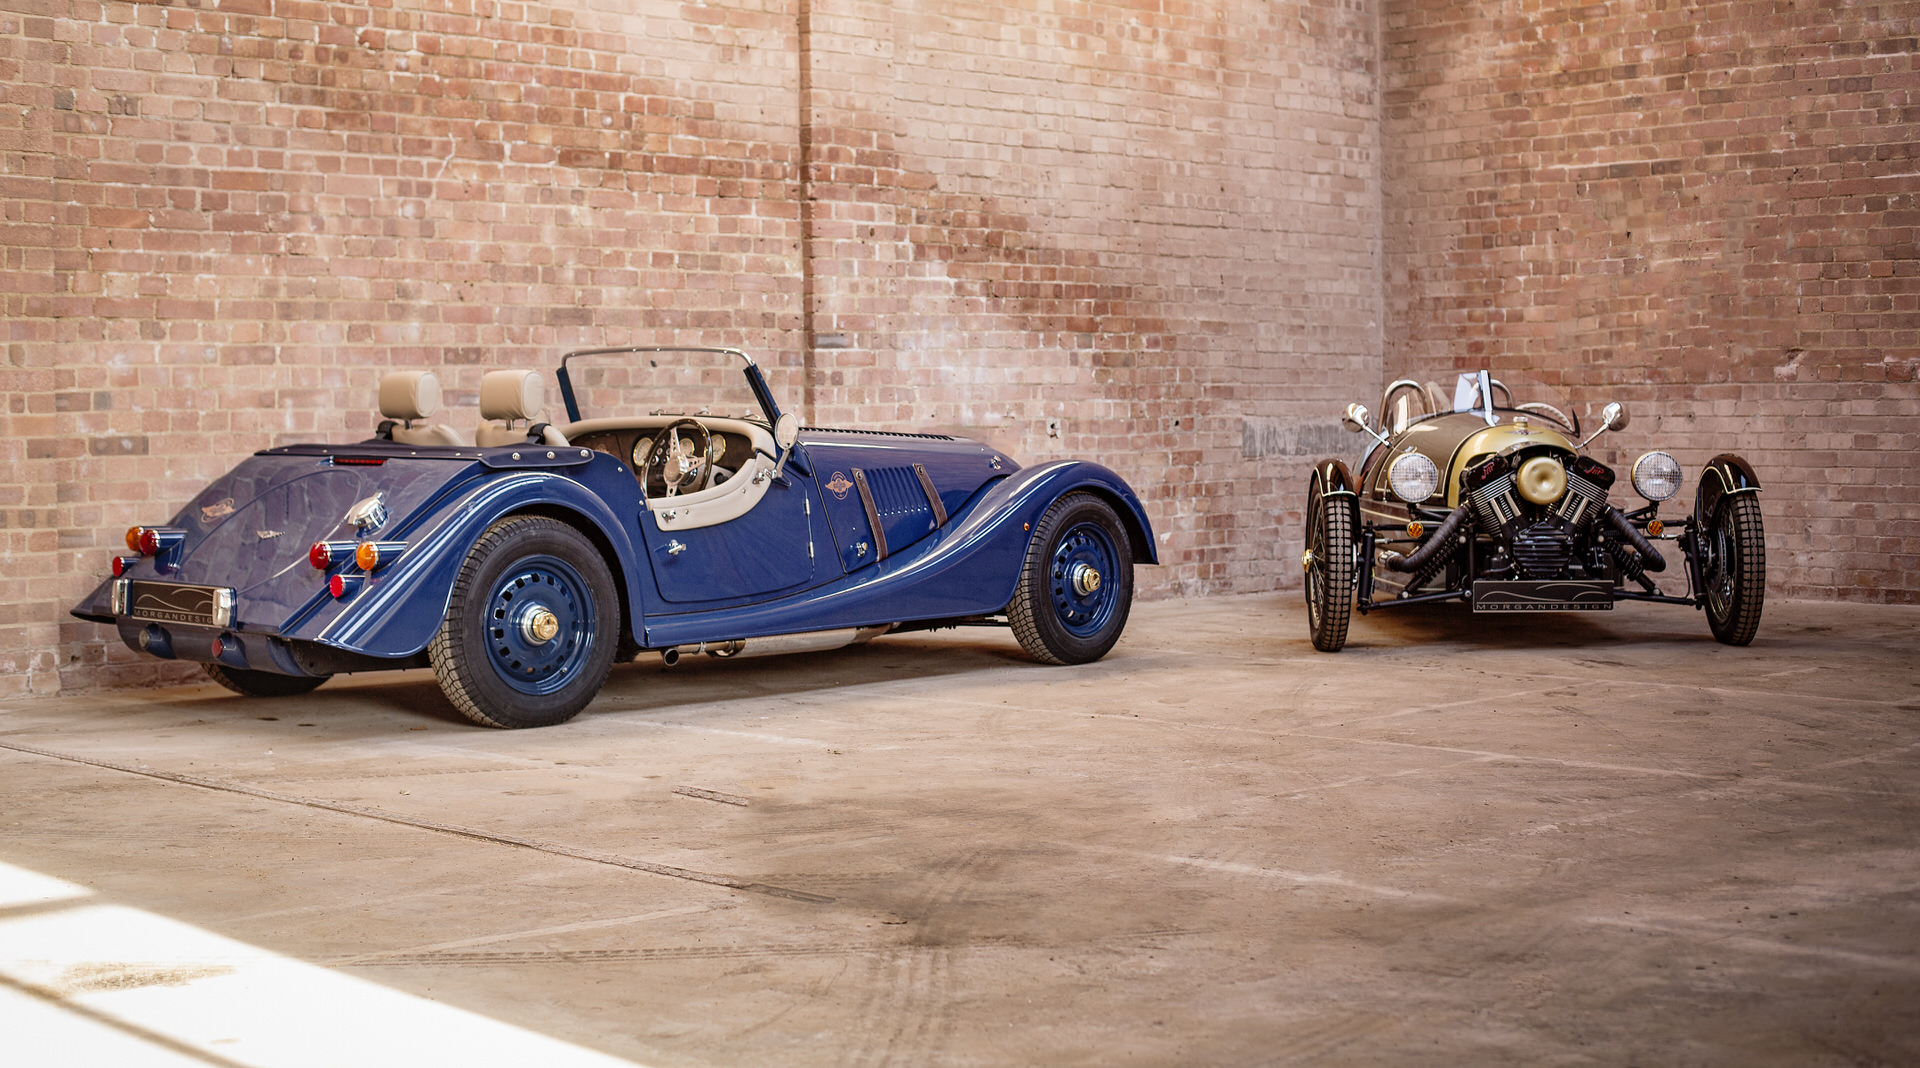 80th Anniversary 4/4 with the Morgan three-wheeler Photo: morganmotorcompany